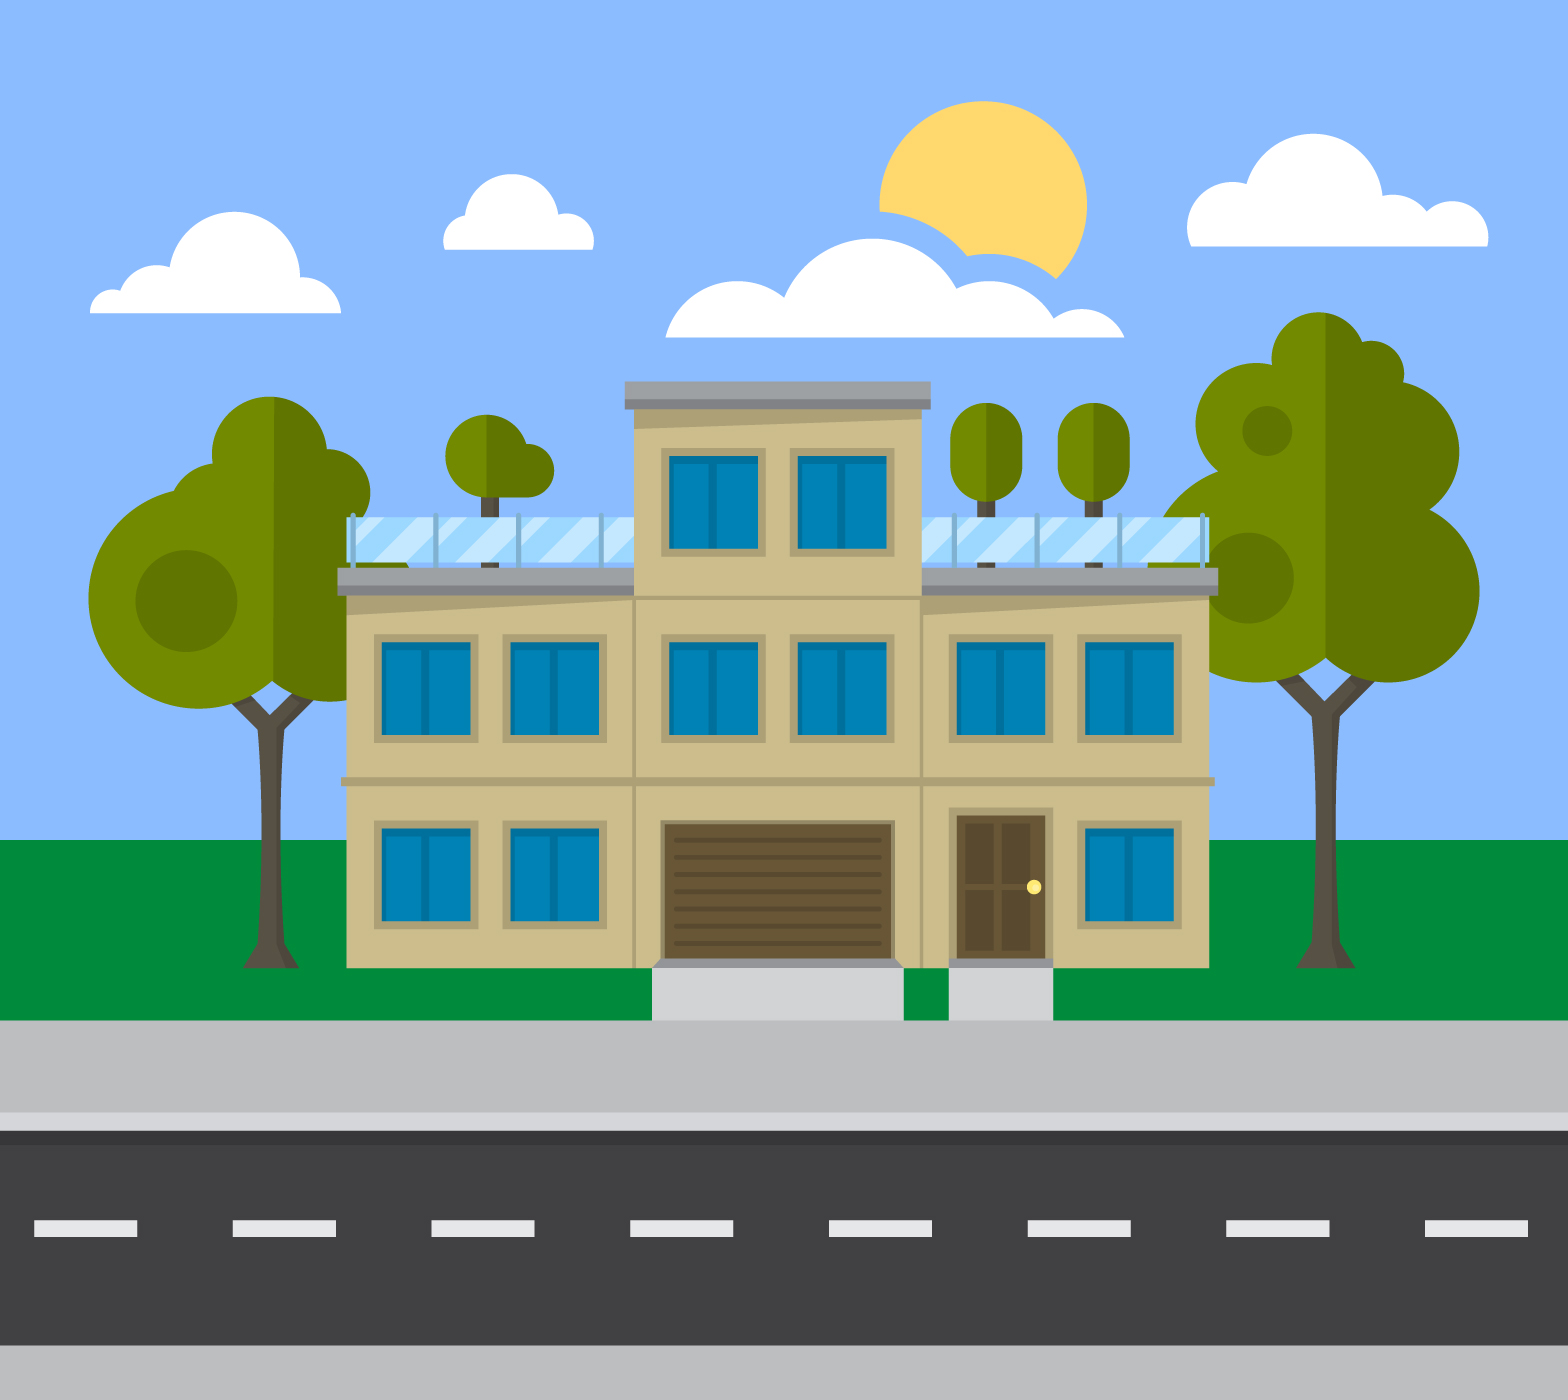 Building Cartoon Free Vector Art 13624 Free Downloads